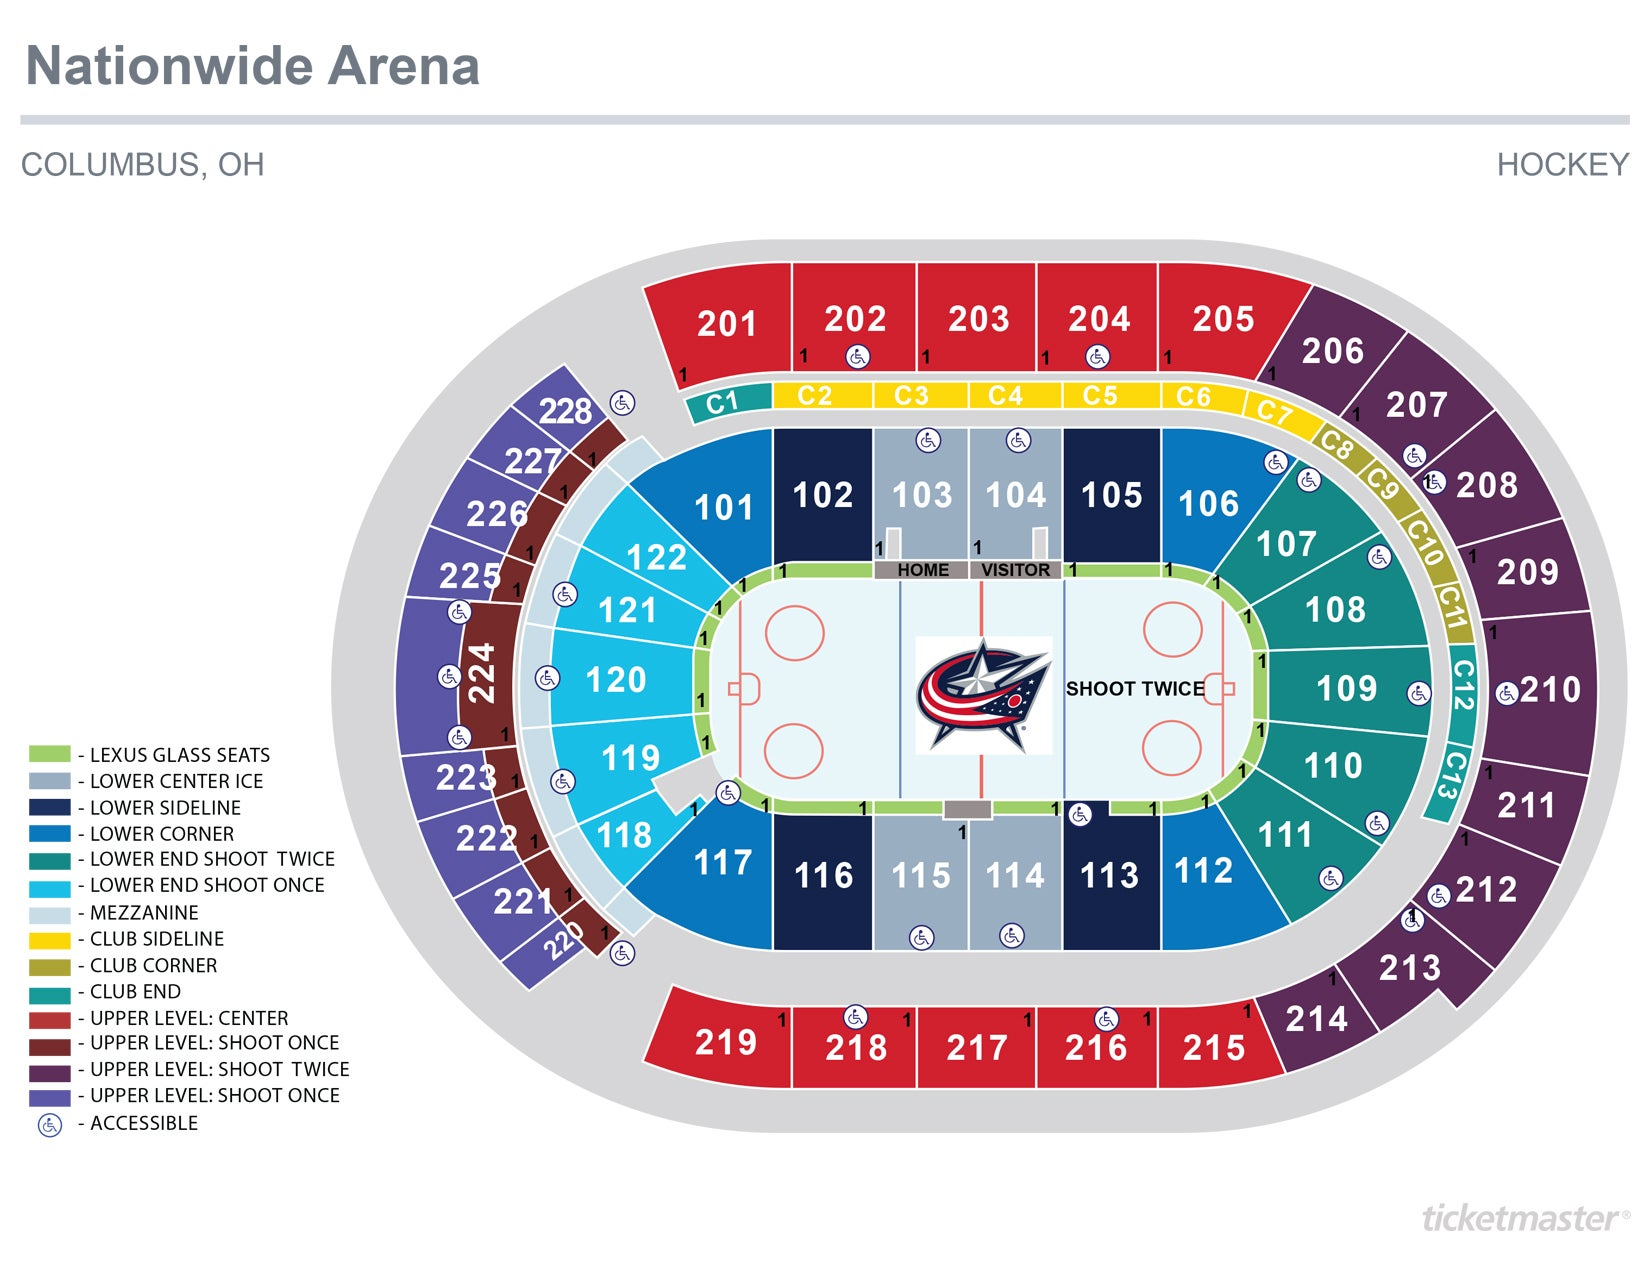 Hockey Seating Map.jpg